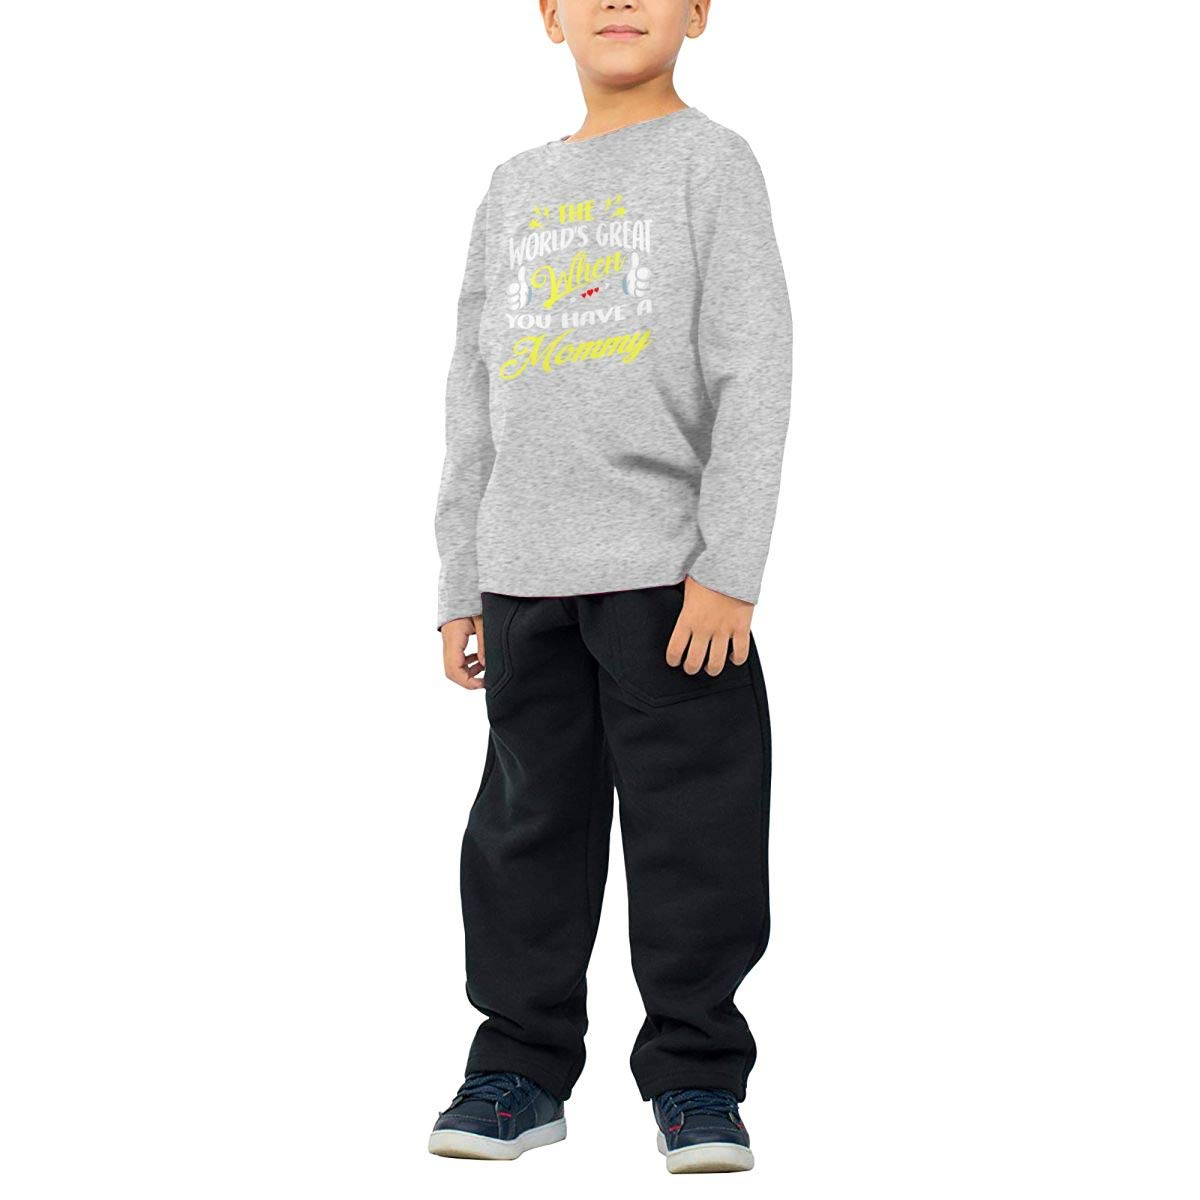 The Wolds Great When You Have A Mother Youth Boys Long Sleeve Tops Cotton